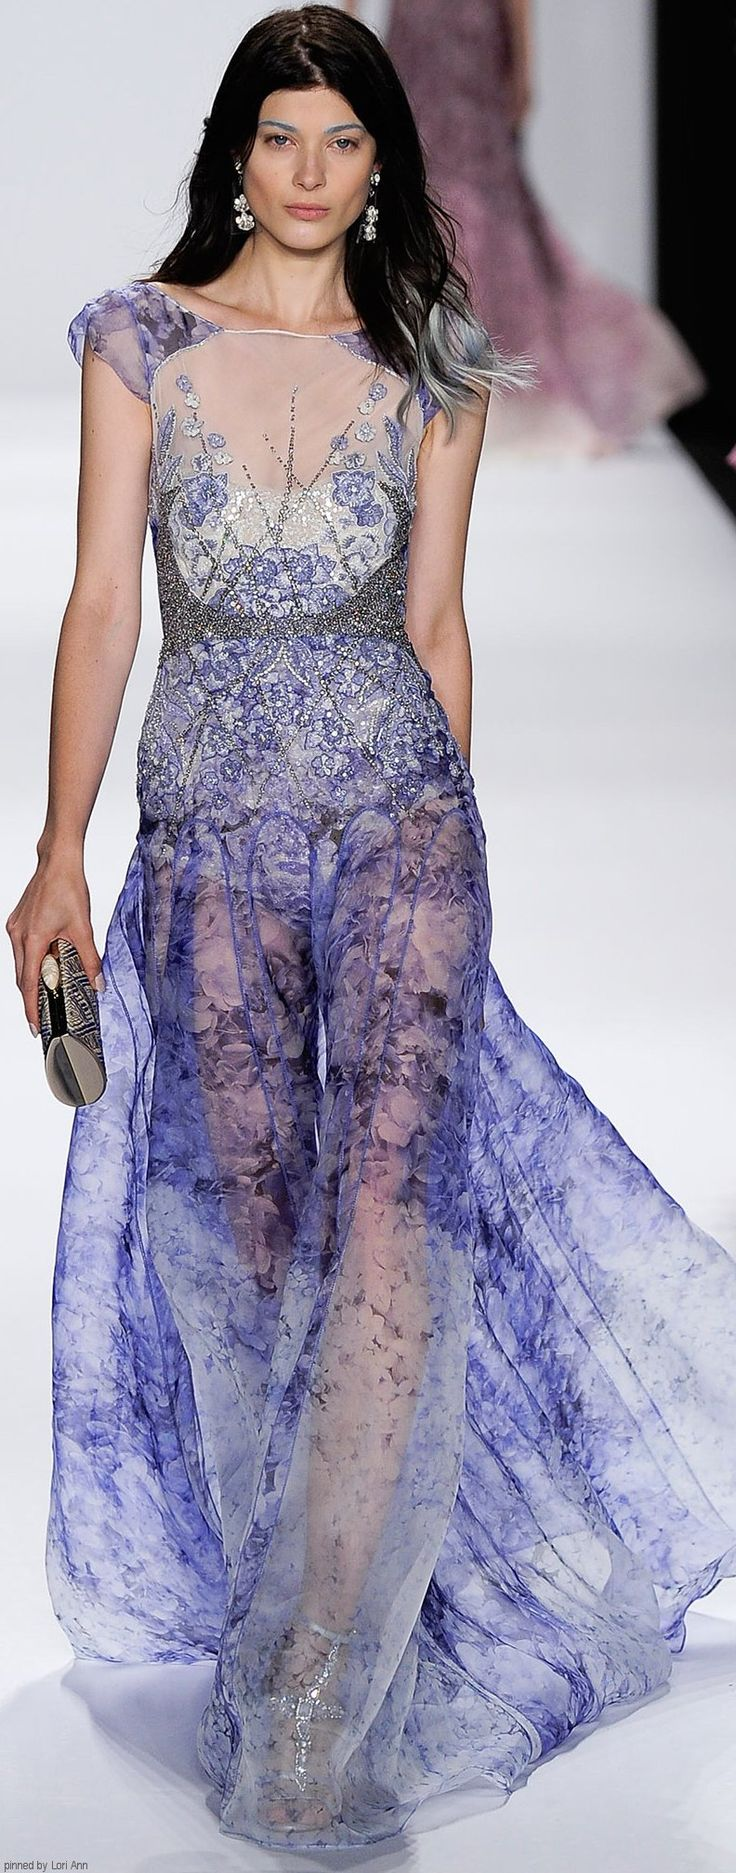 68 best badgley mischka images on pinterest fashion show for Badgley mischka store nyc